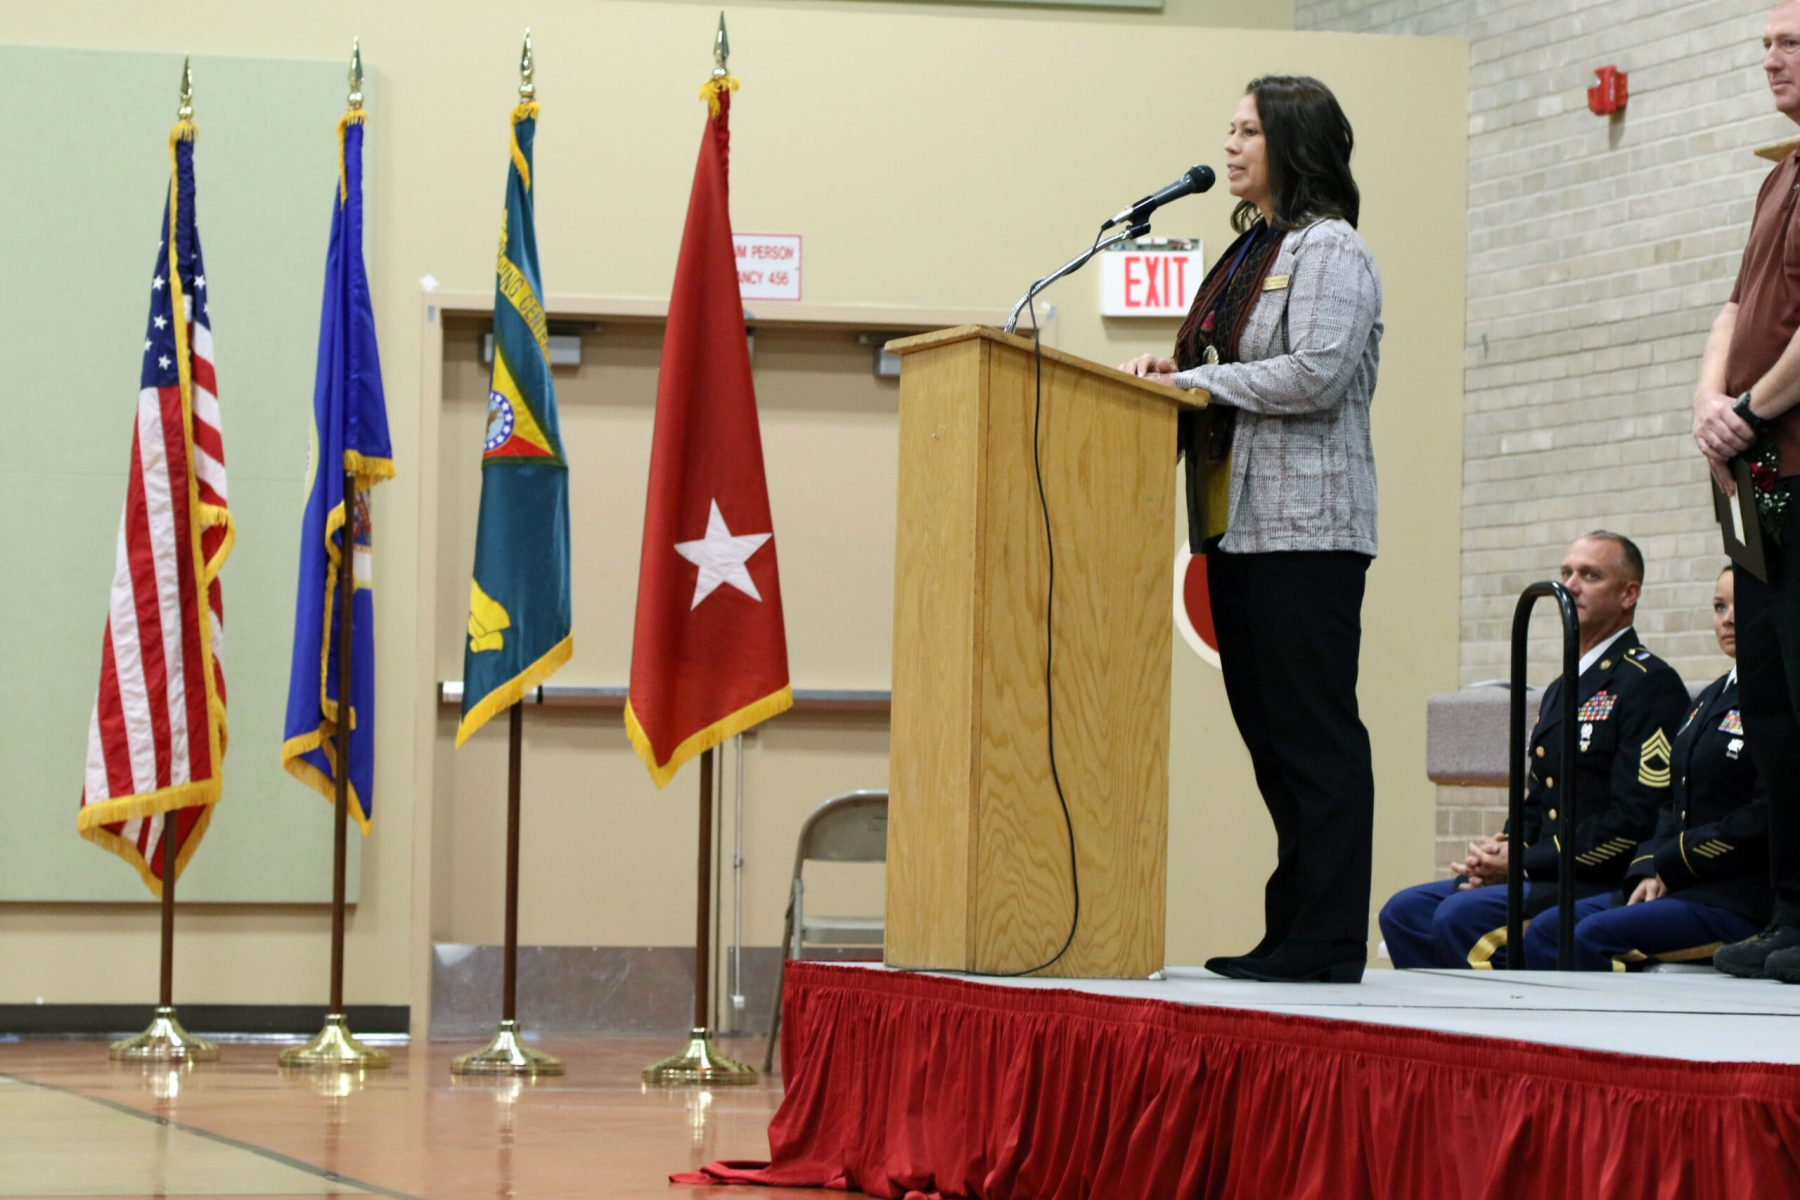 Command Sergeant Major (Ret.) Cynthia A. Kallberg thanks her family, friends, and mentors during the Court of Honor Induction Ceremony on Camp Ripley on October 6th 2019.